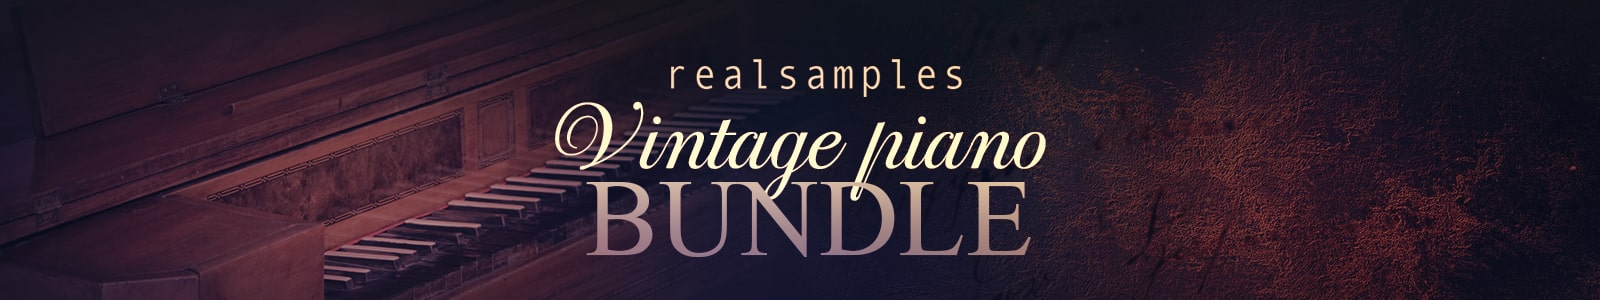 VINTAGE PIANO BUNDLE